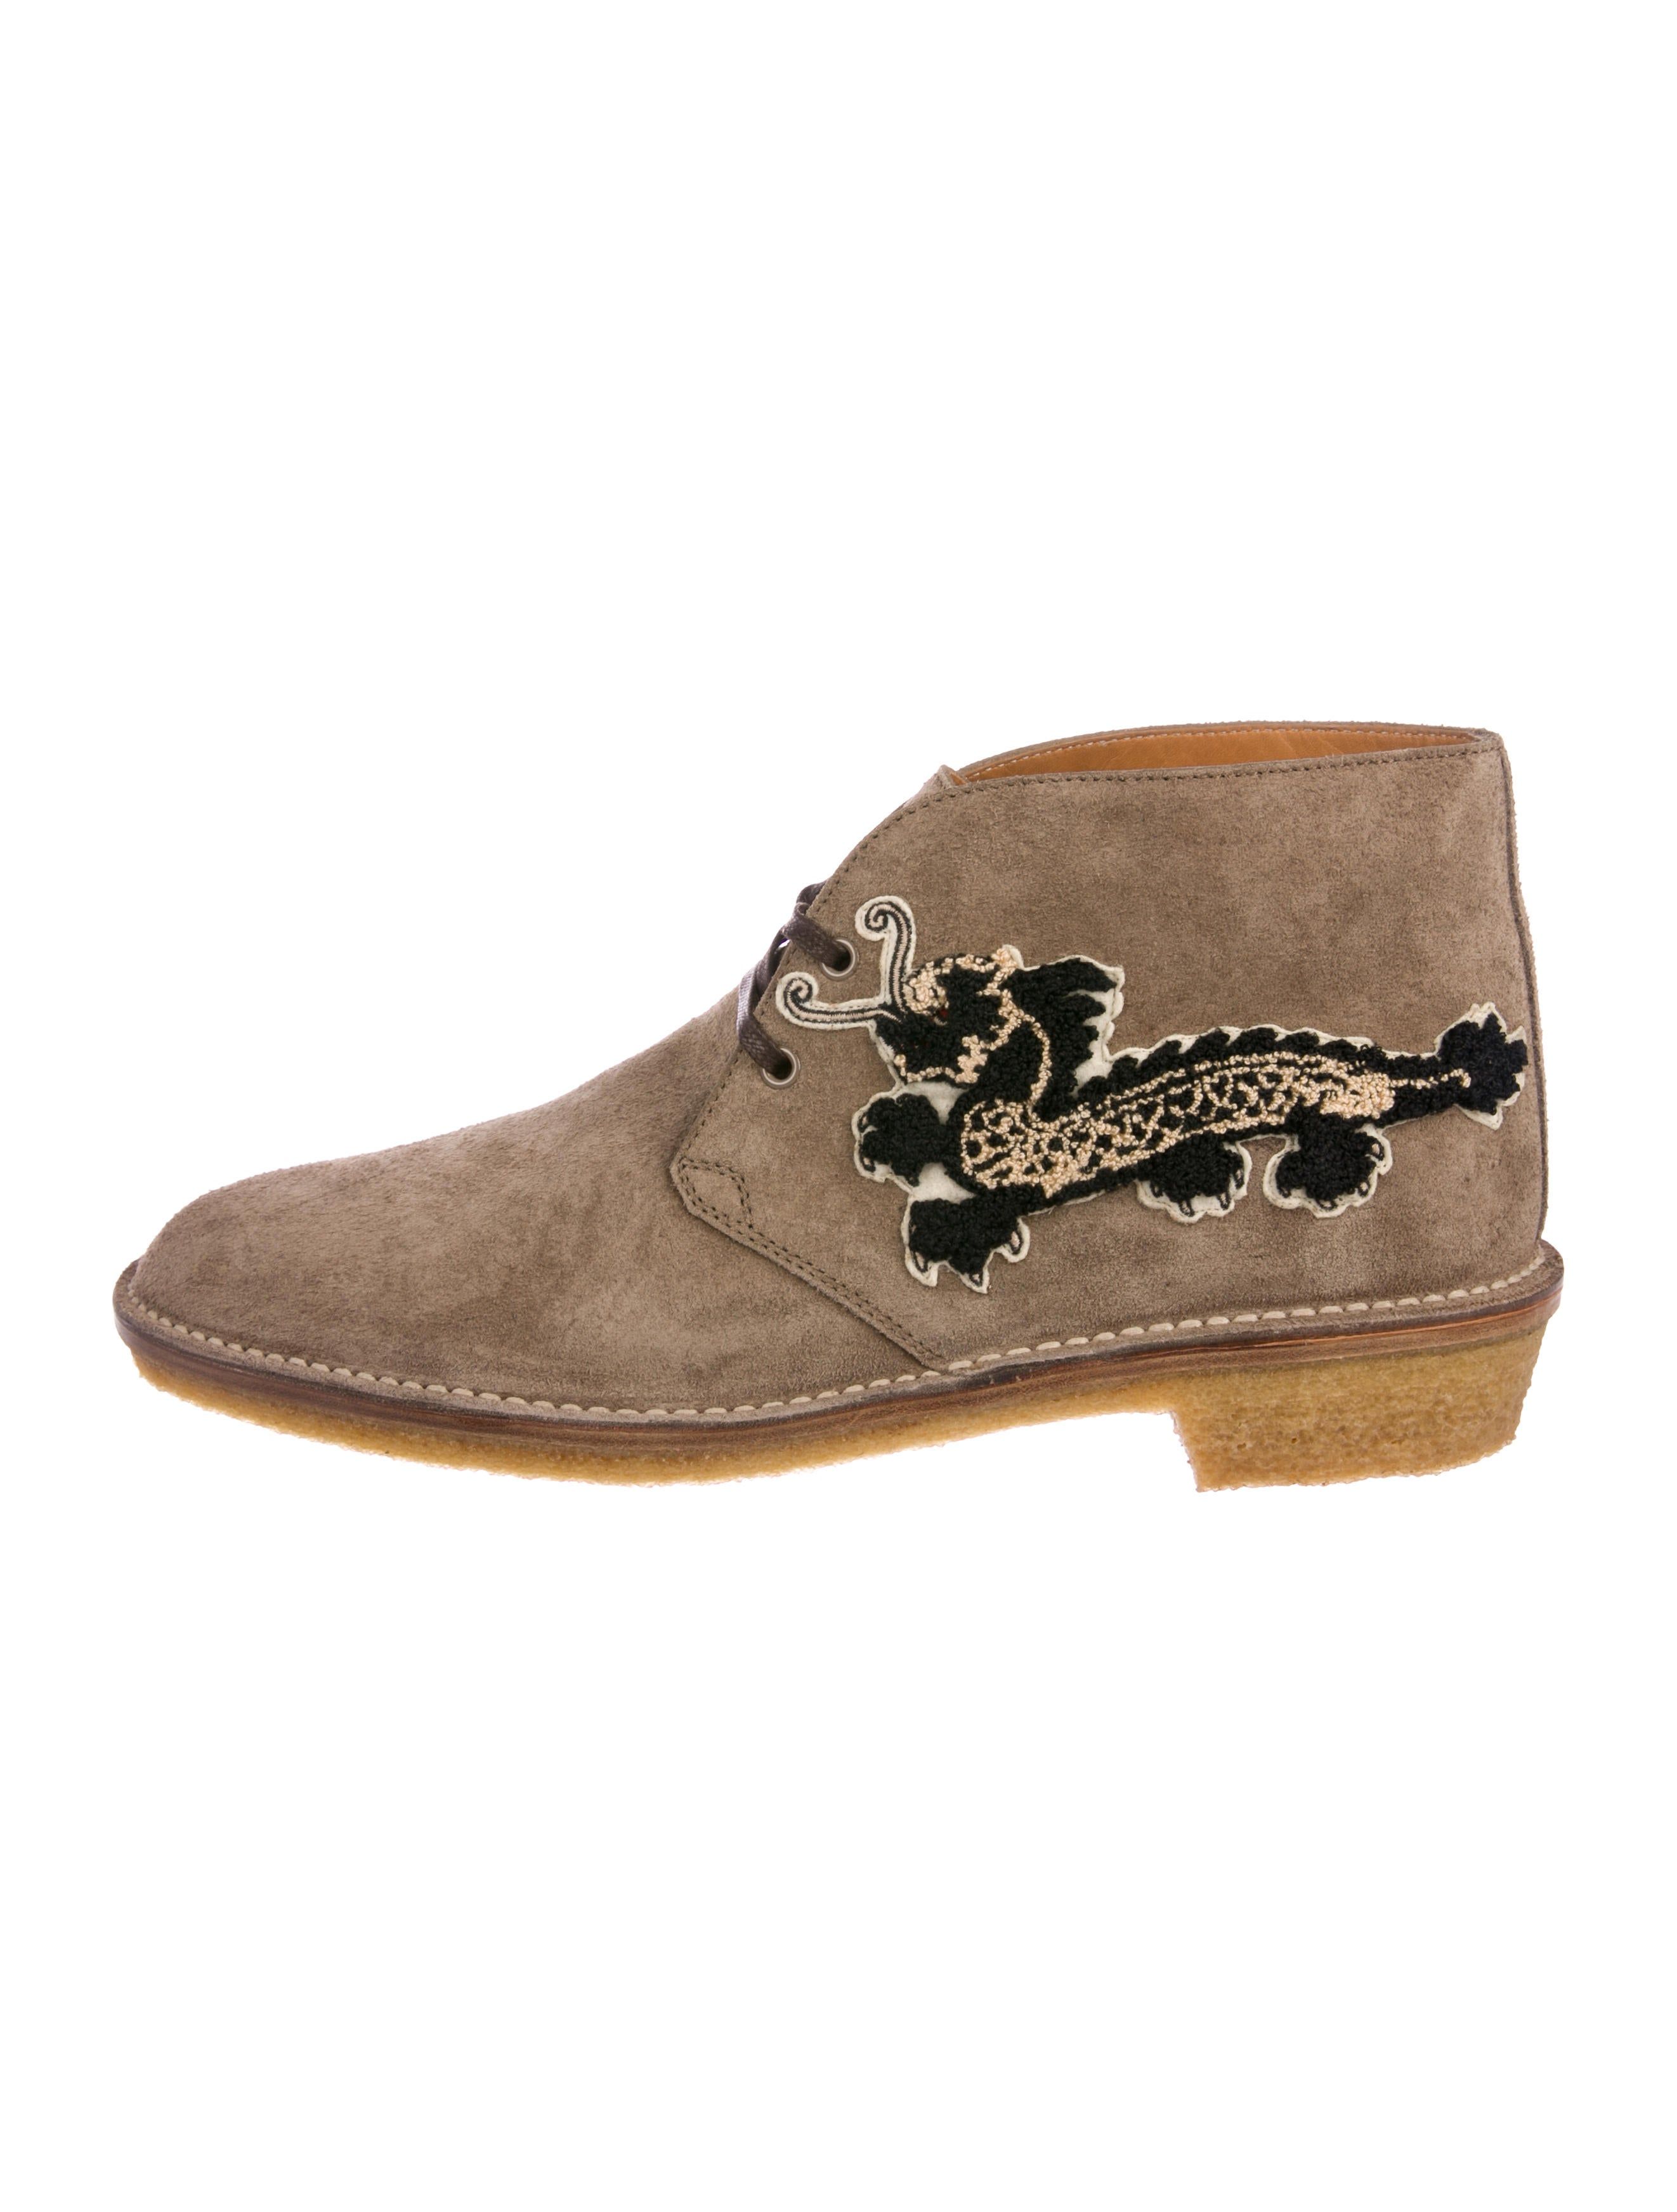 1fe6b6515 Gucci 2017 Moreau Embroidered Chukka Boots - Shoes - GUC230563 | The ...